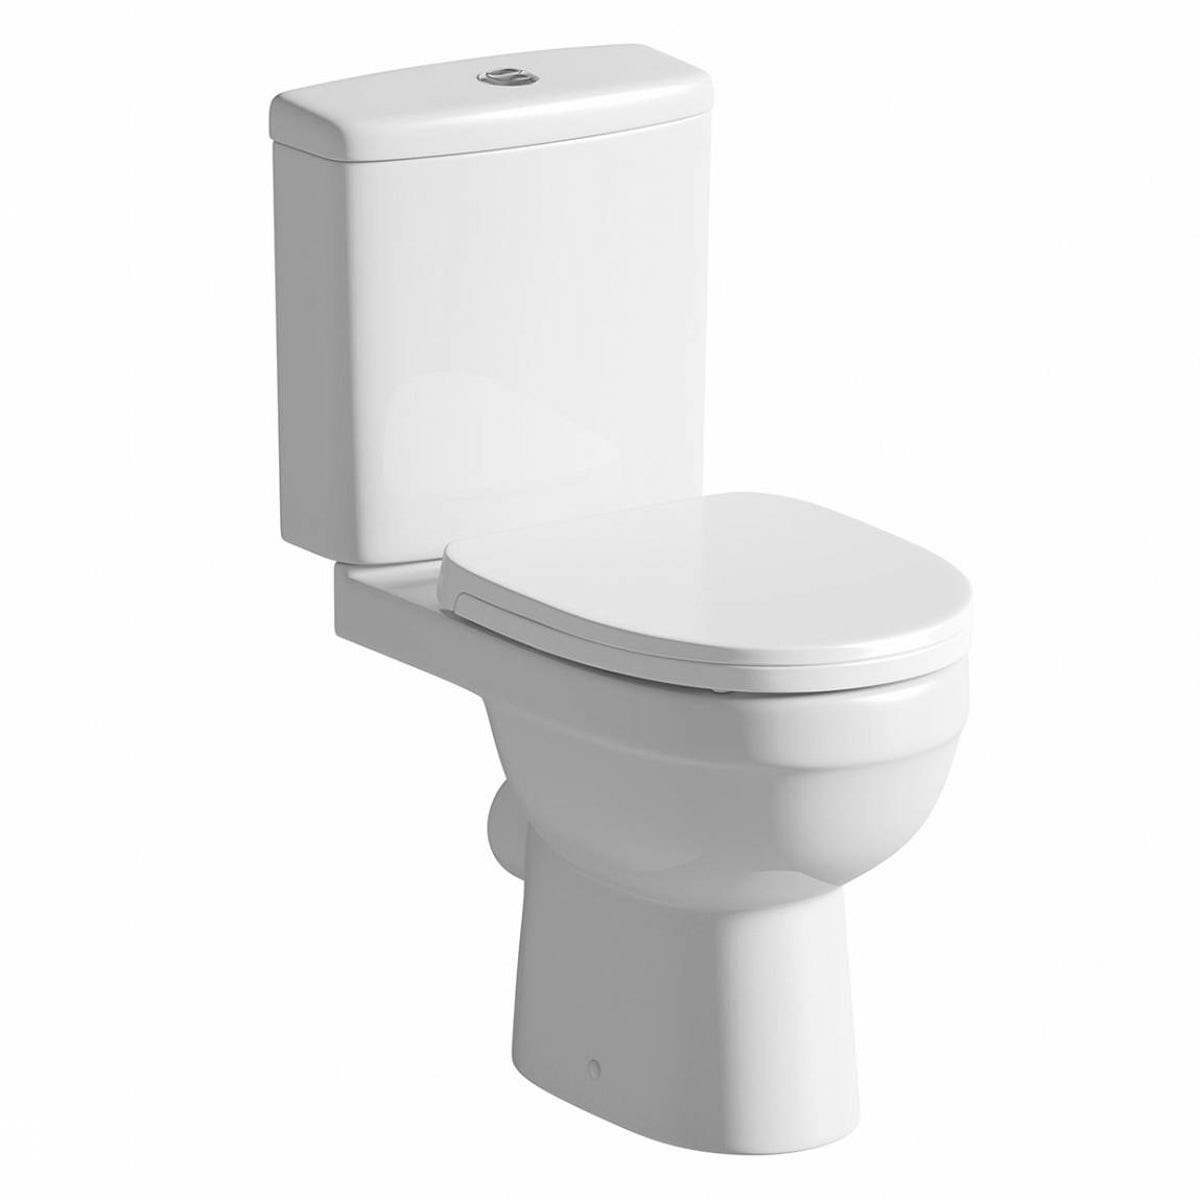 soft touch toilet seat. Eden close coupled toilet with soft seat Orchard